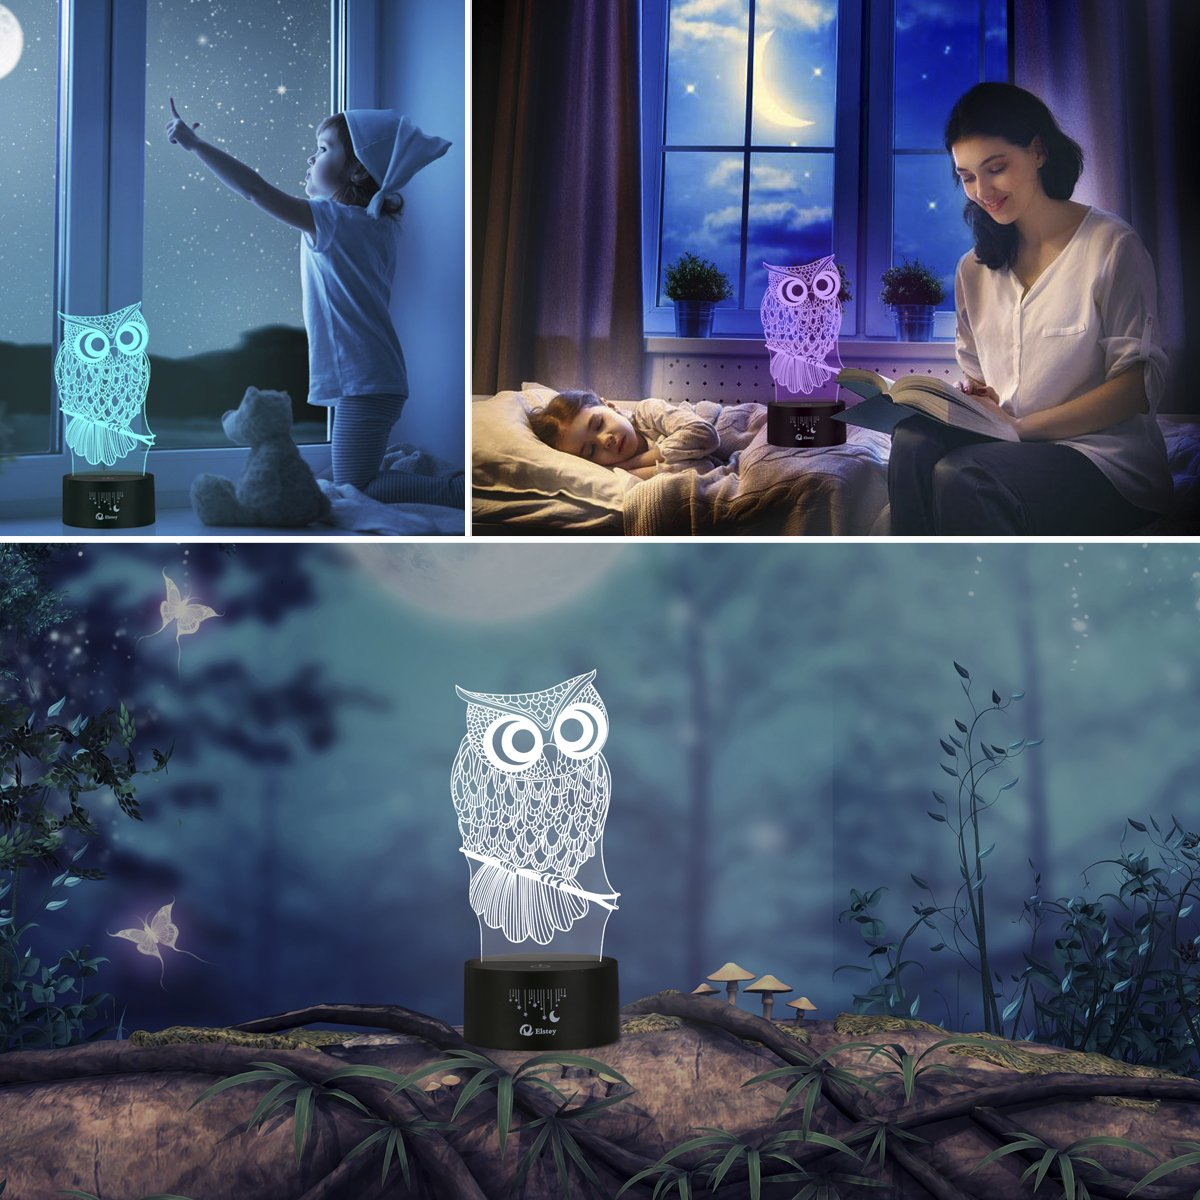 Owl 3D Illusion Lamp, Elstey 7 Color Changing Touch Table Desk LED Night Light Great Kids Gifts Home Decoration by Elstey (Image #6)